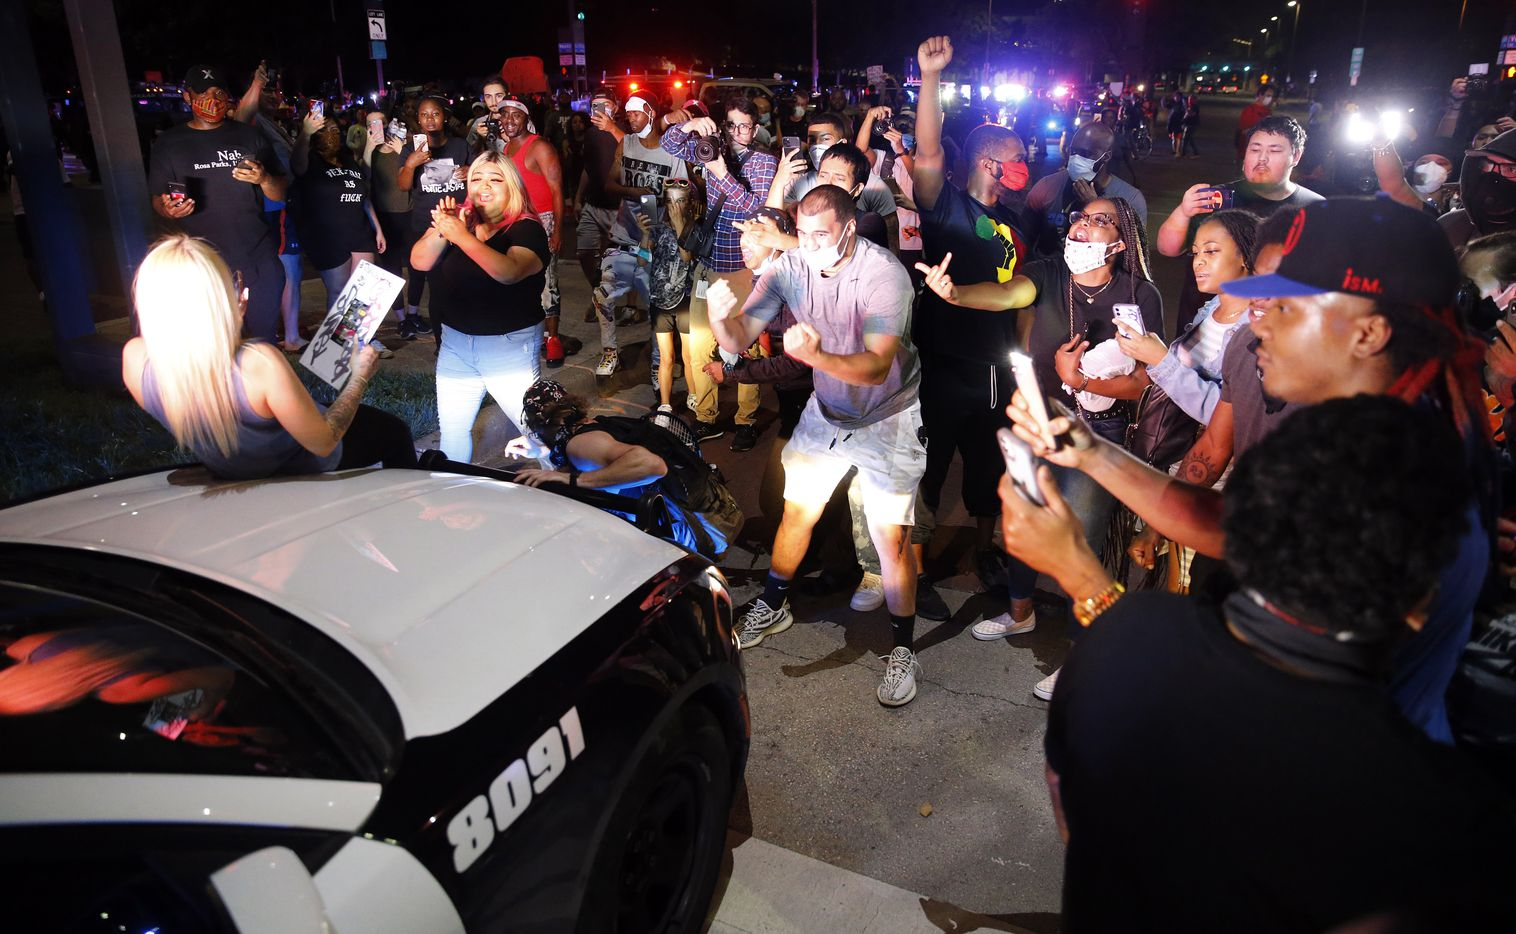 Protestors stop Dallas Police officers responding to a confrontation at Young St. and S. Griffin St. in downtown Dallas, Friday, May 29, 2020. People were marching in protest of the in-custody death of George Floyd when they confronted Dallas Police tactical officers and tear gas was fired.